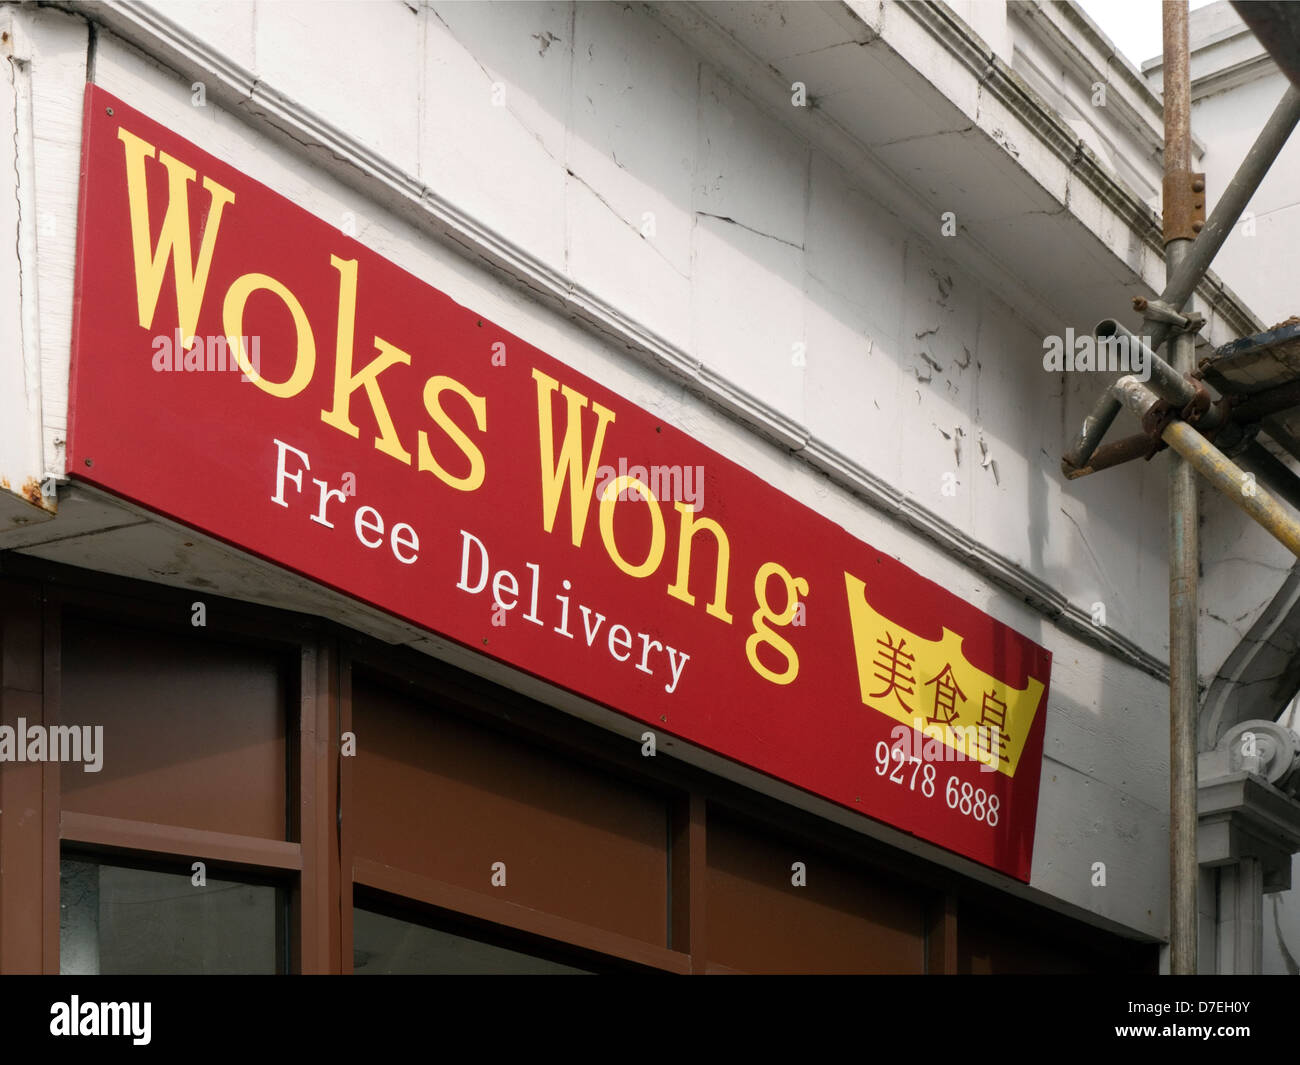 chinese takeaway with an unusual name a play on words - Stock Image